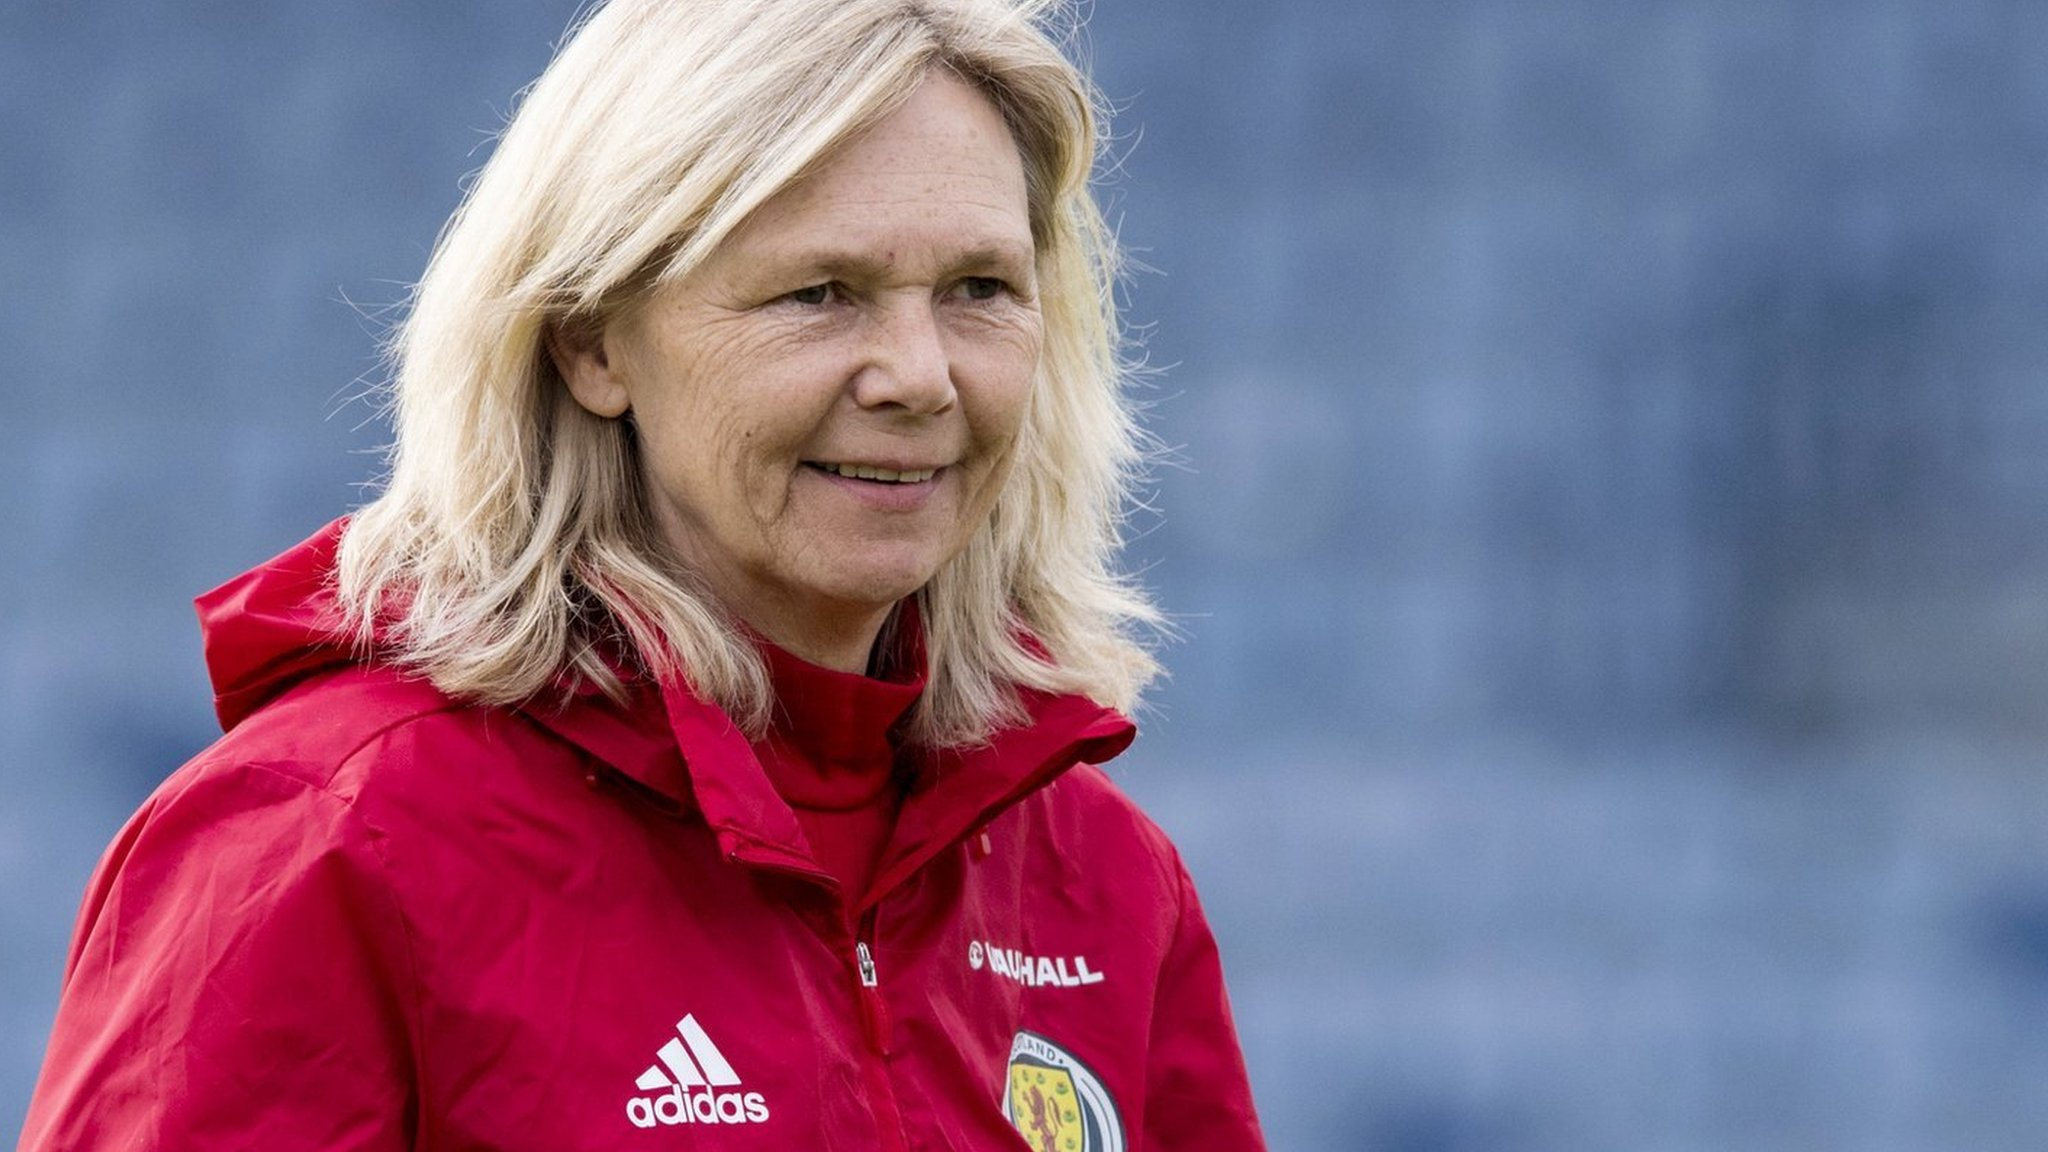 'Everything is possible, we still believe' - Scotland boss Signeul